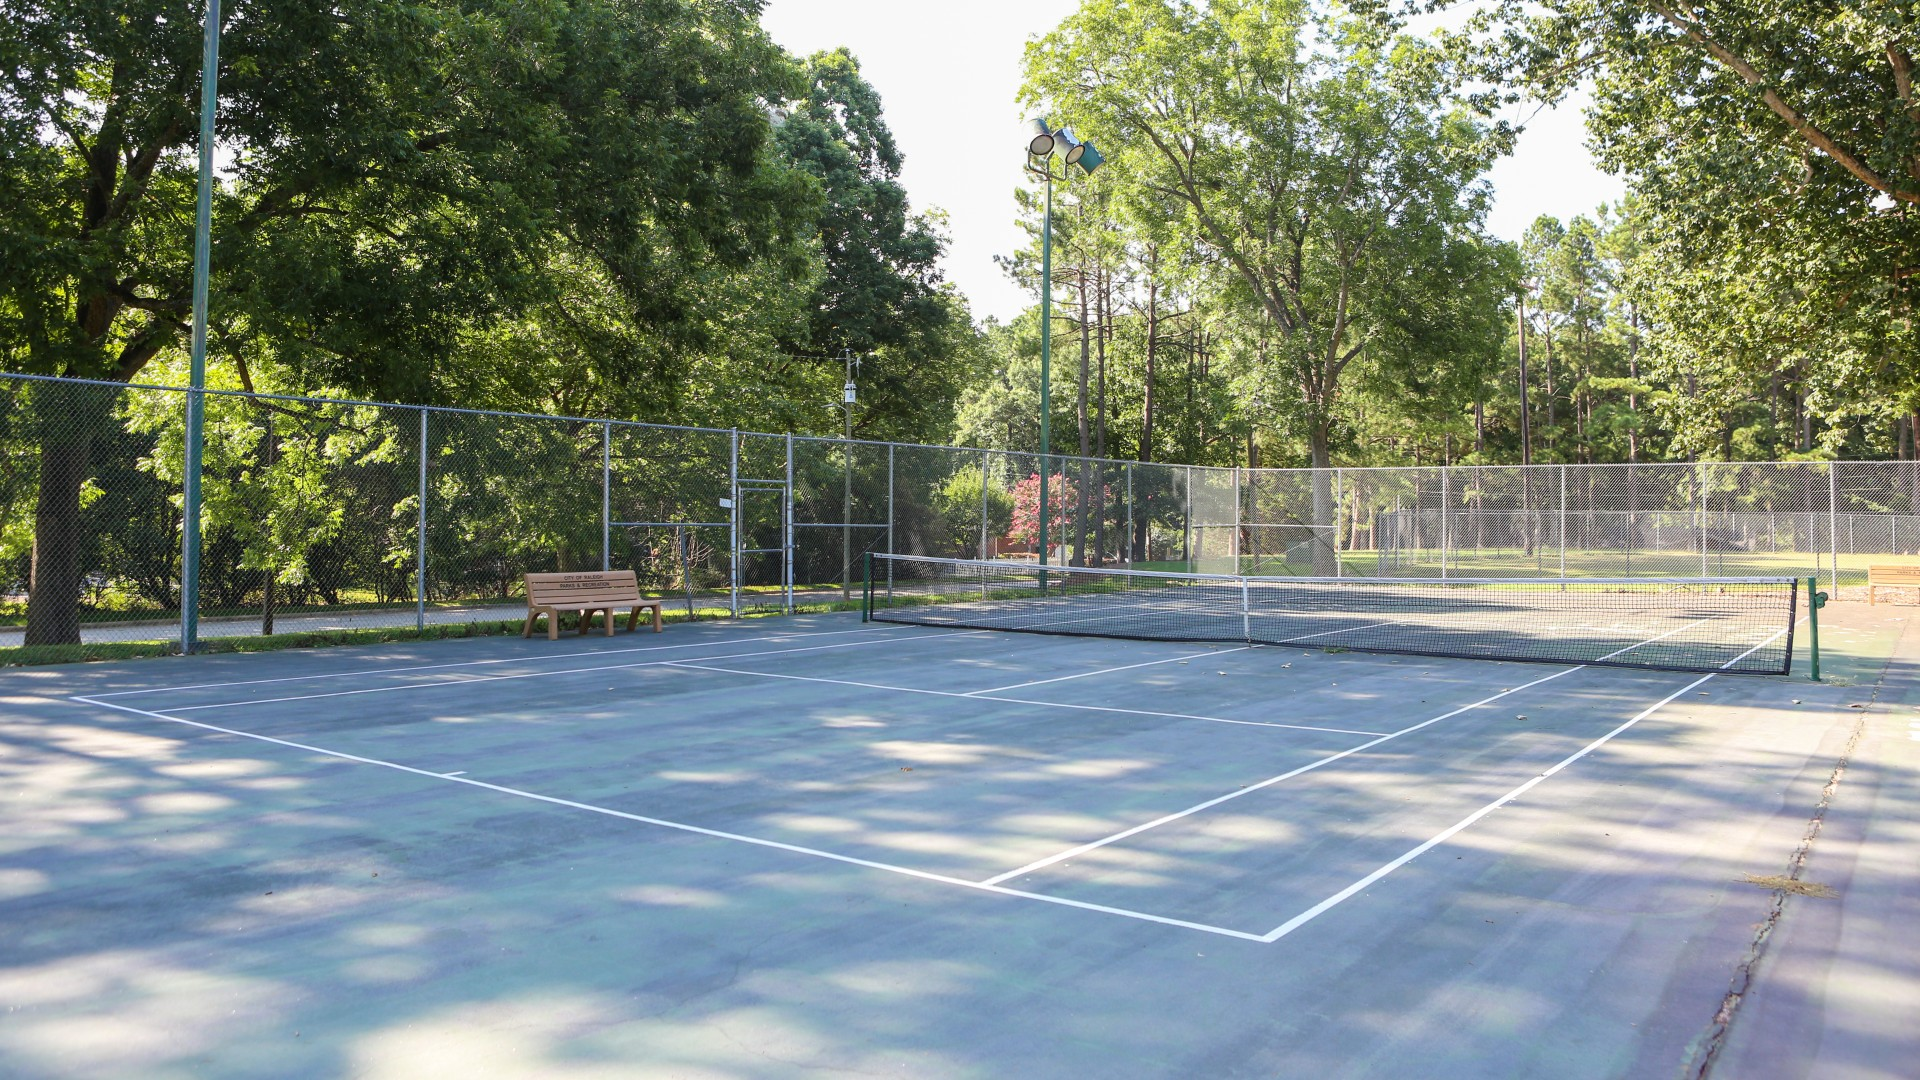 Two outdoor tennis courts with backboards and lighting